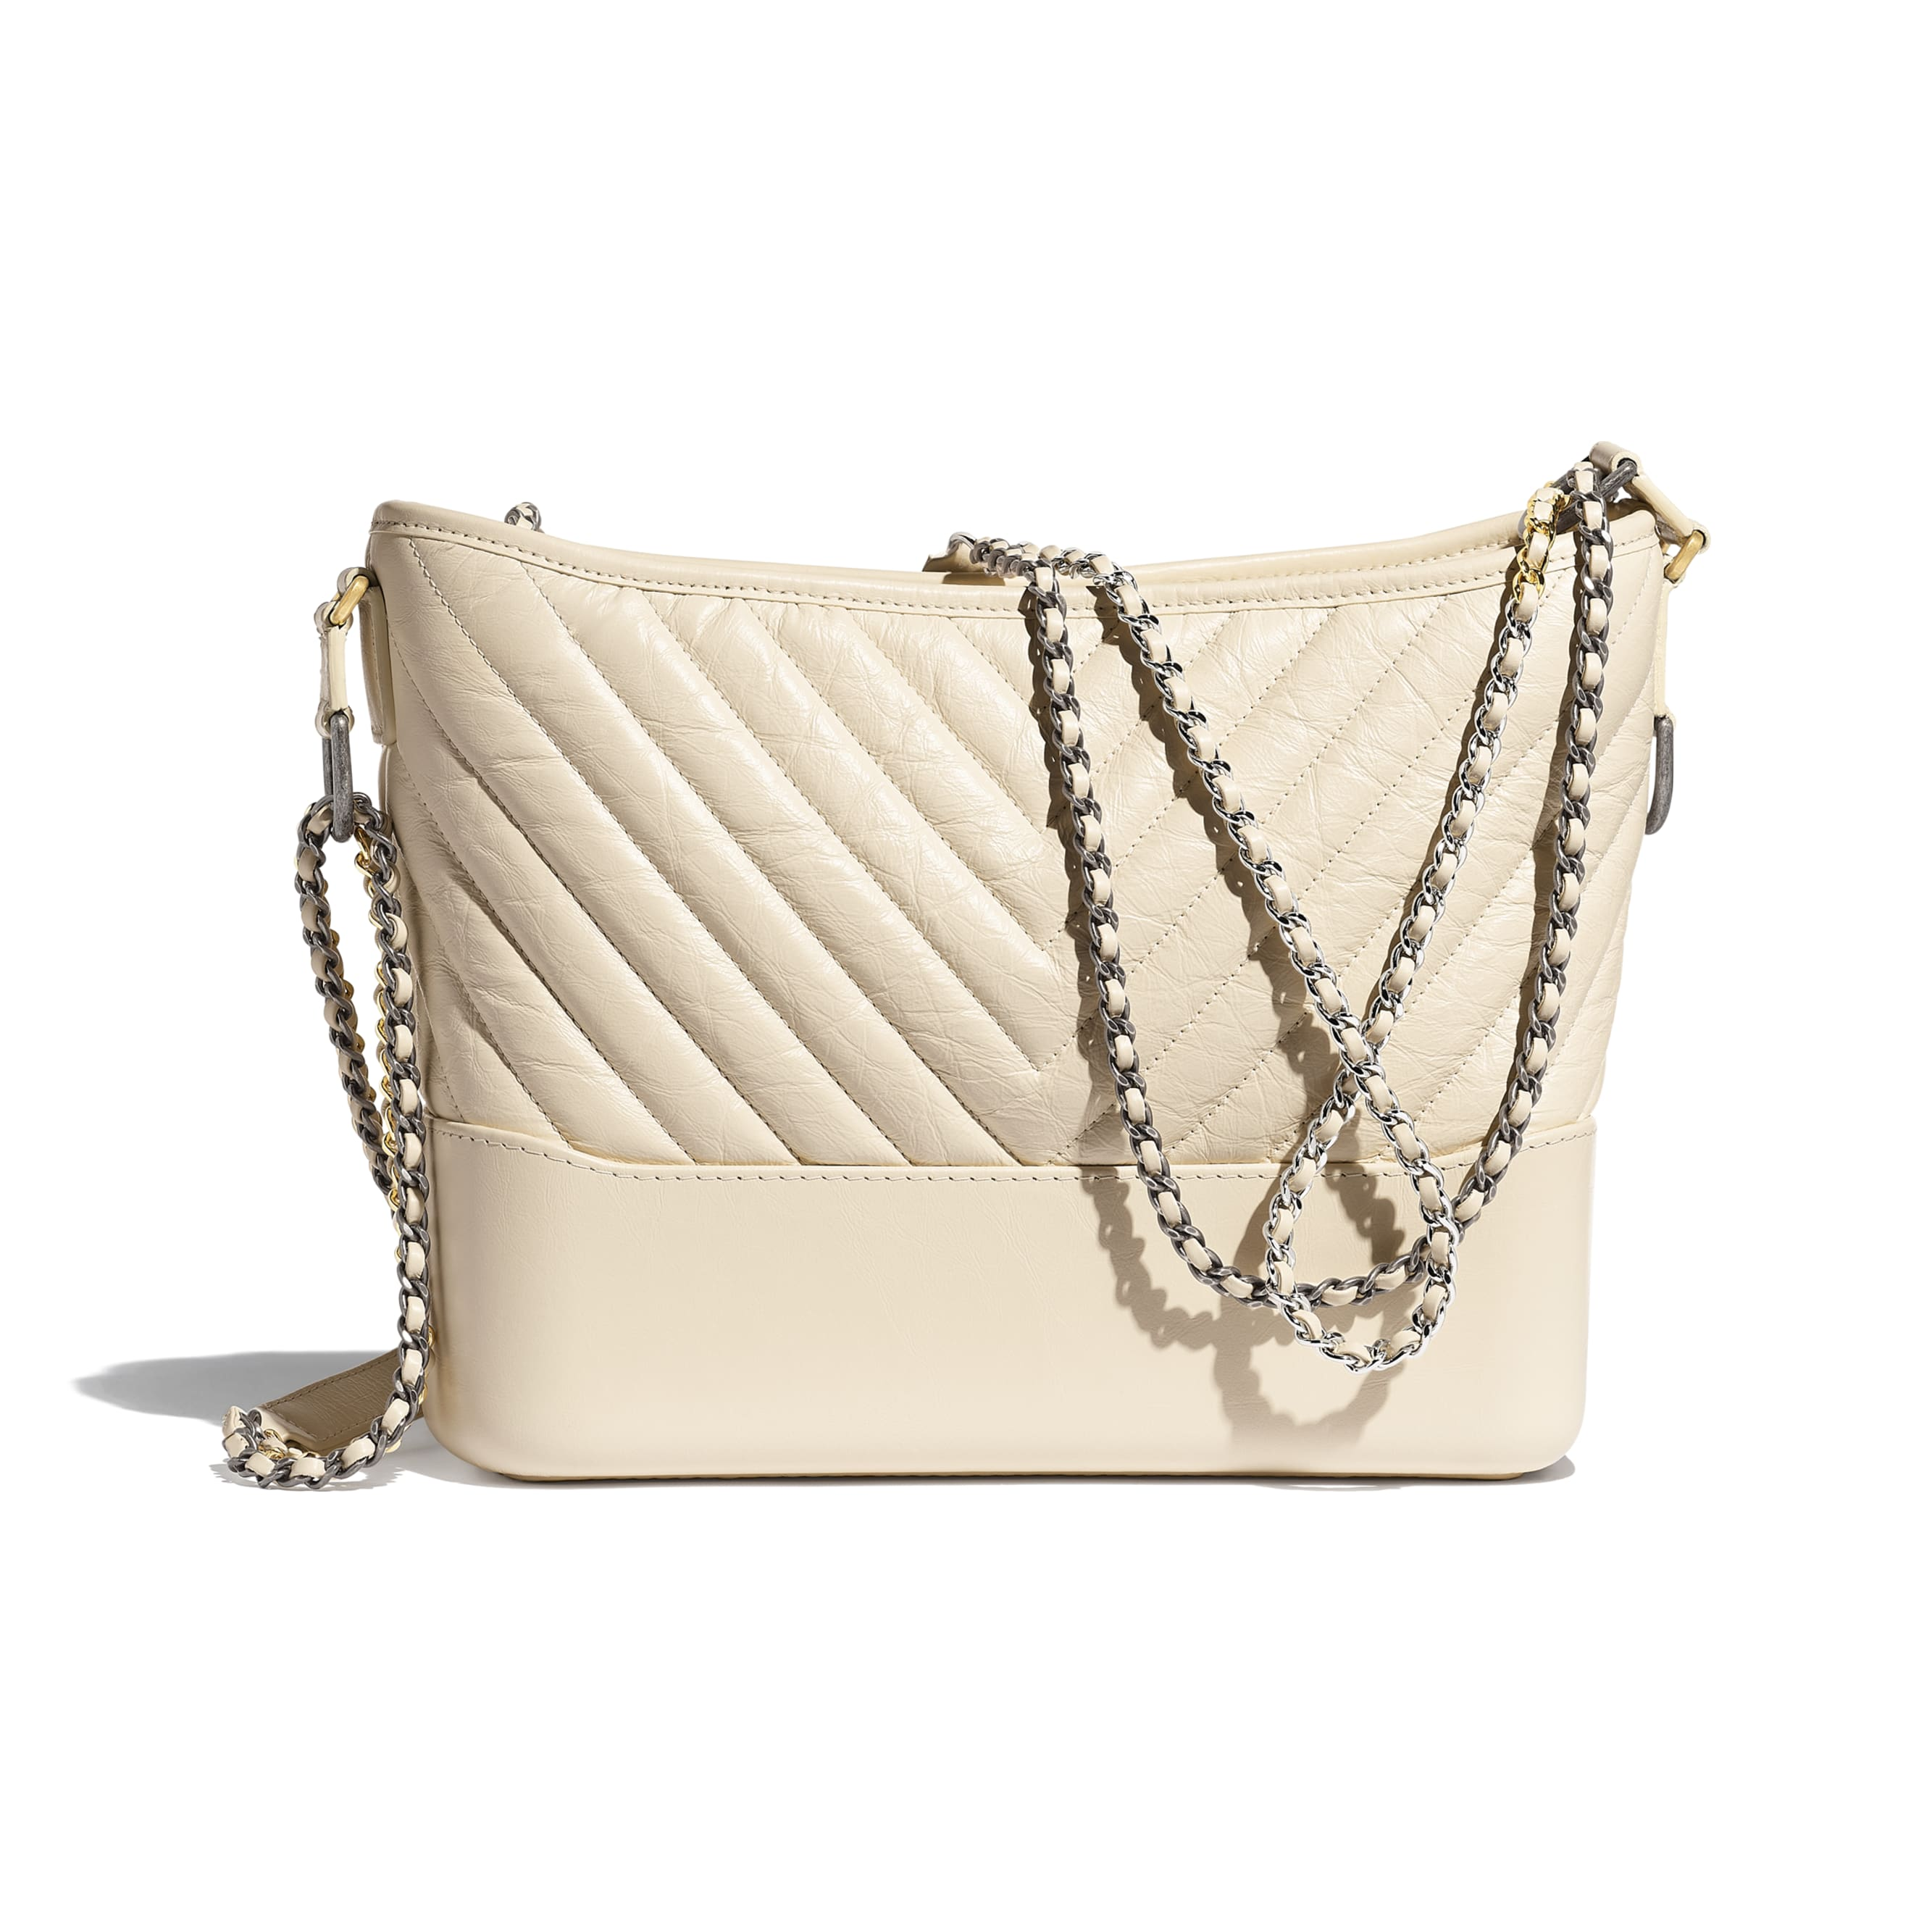 CHANEL'S GABRIELLE Large Hobo Bag - Light Beige - Aged Calfskin, Smooth Calfskin, Gold-Tone, Silver-Tone & Ruthenium-Finish Metal - CHANEL - Alternative view - see standard sized version